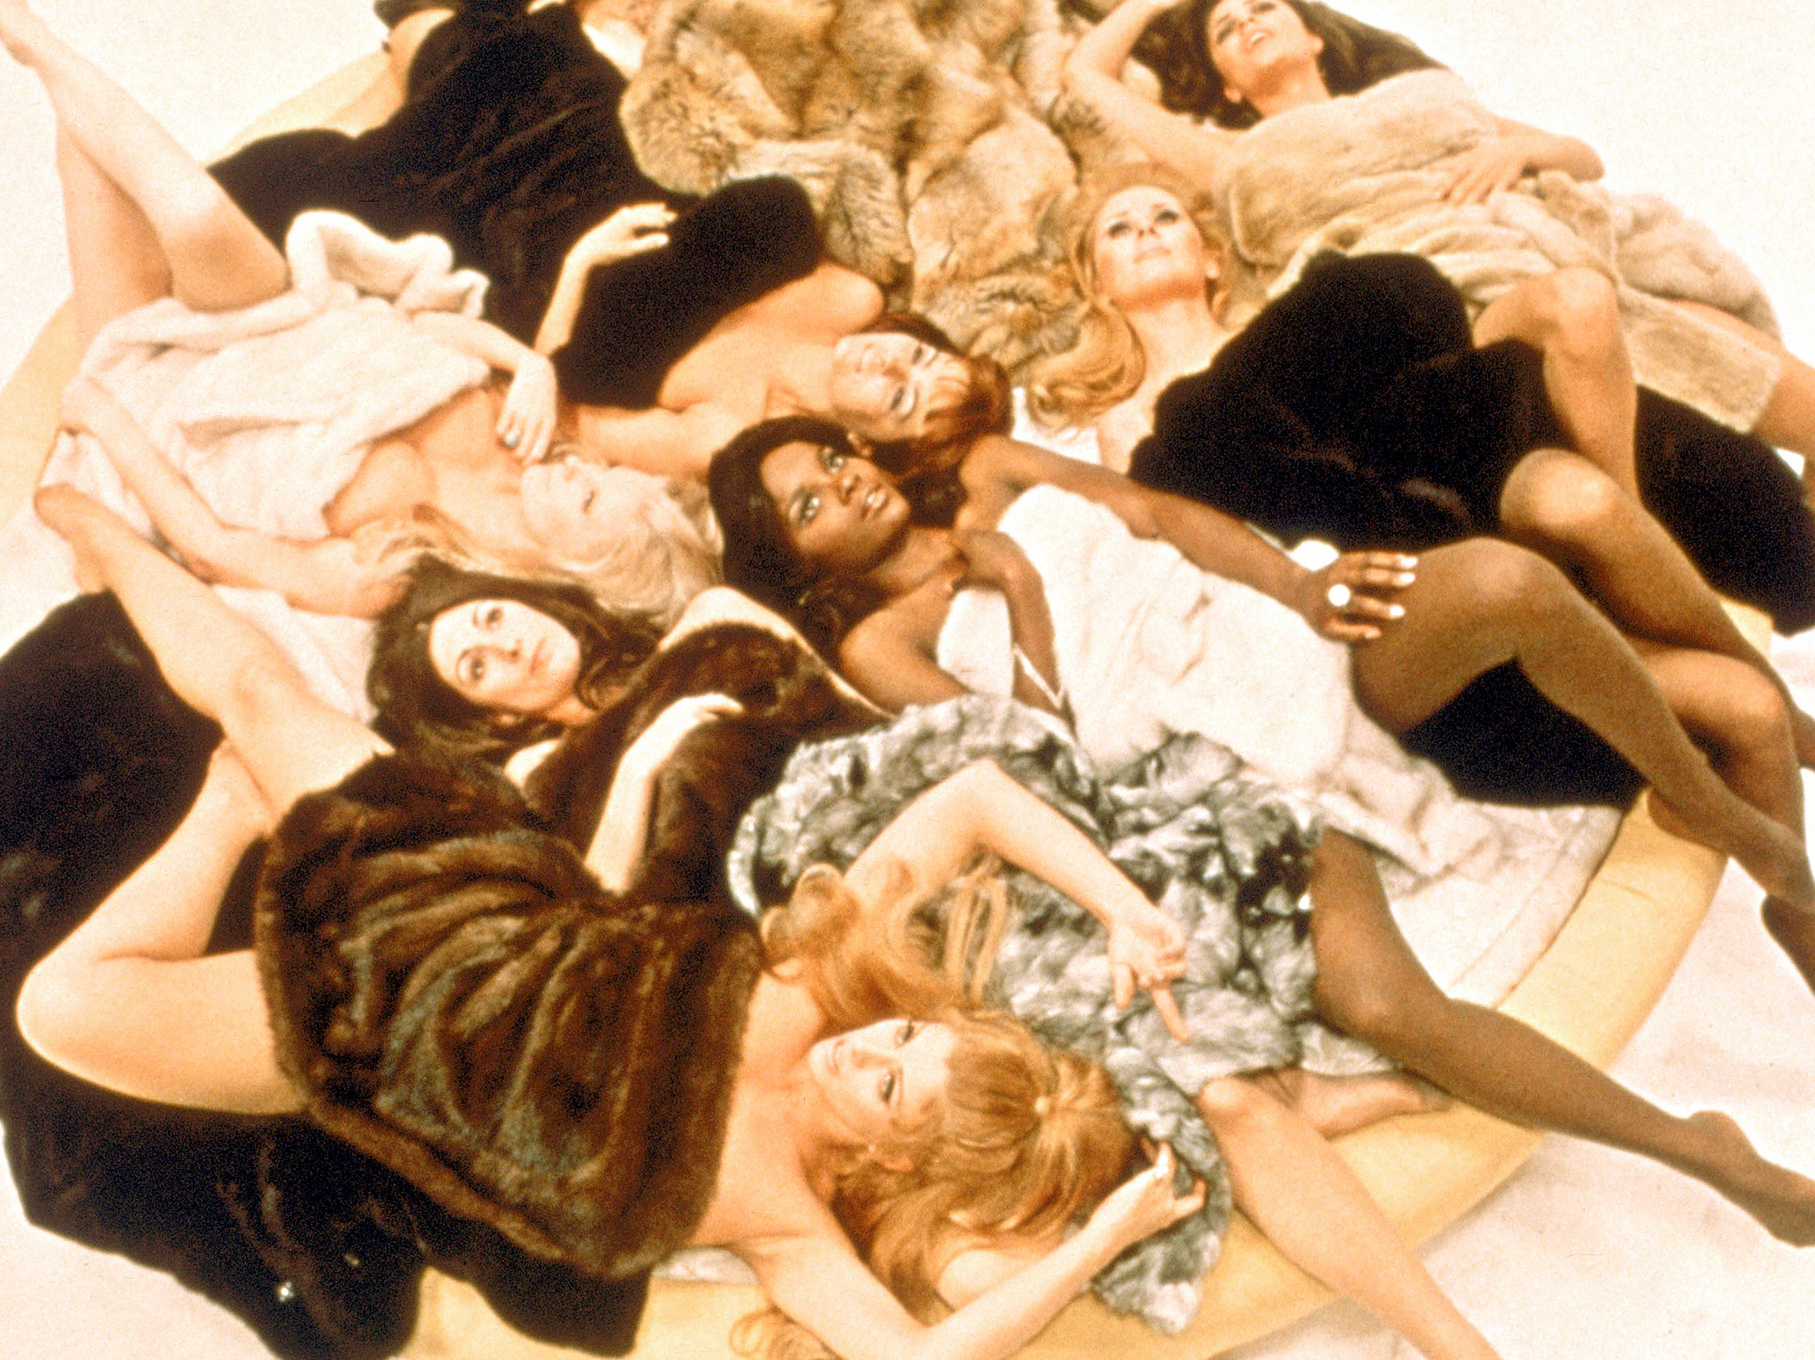 100 sex scenes, Beyond the Valley of the Dolls2